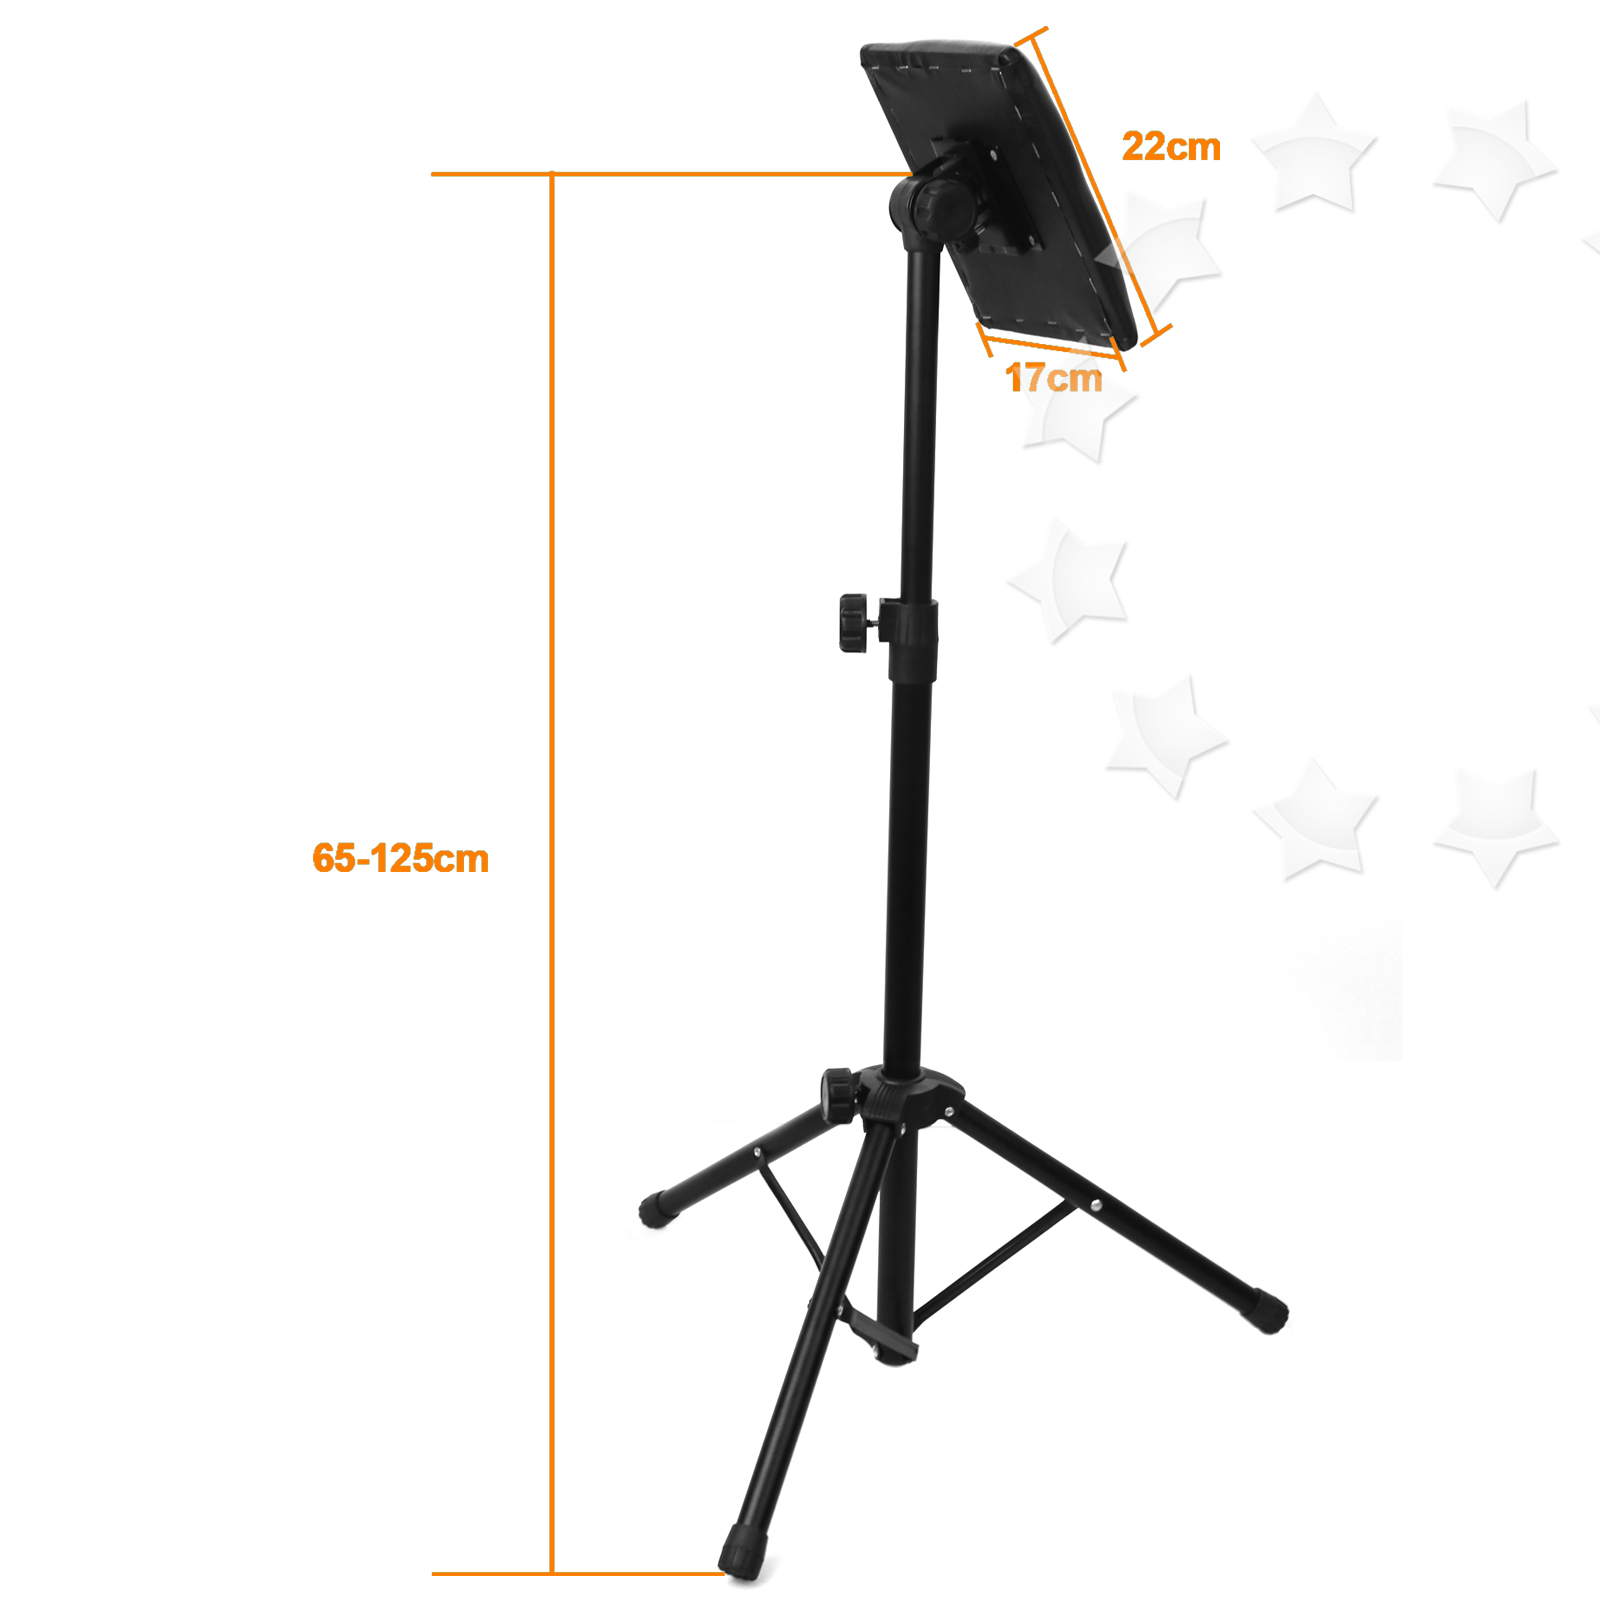 chair mobile stand stool combo adjustable tattoo arm leg rest portable supply